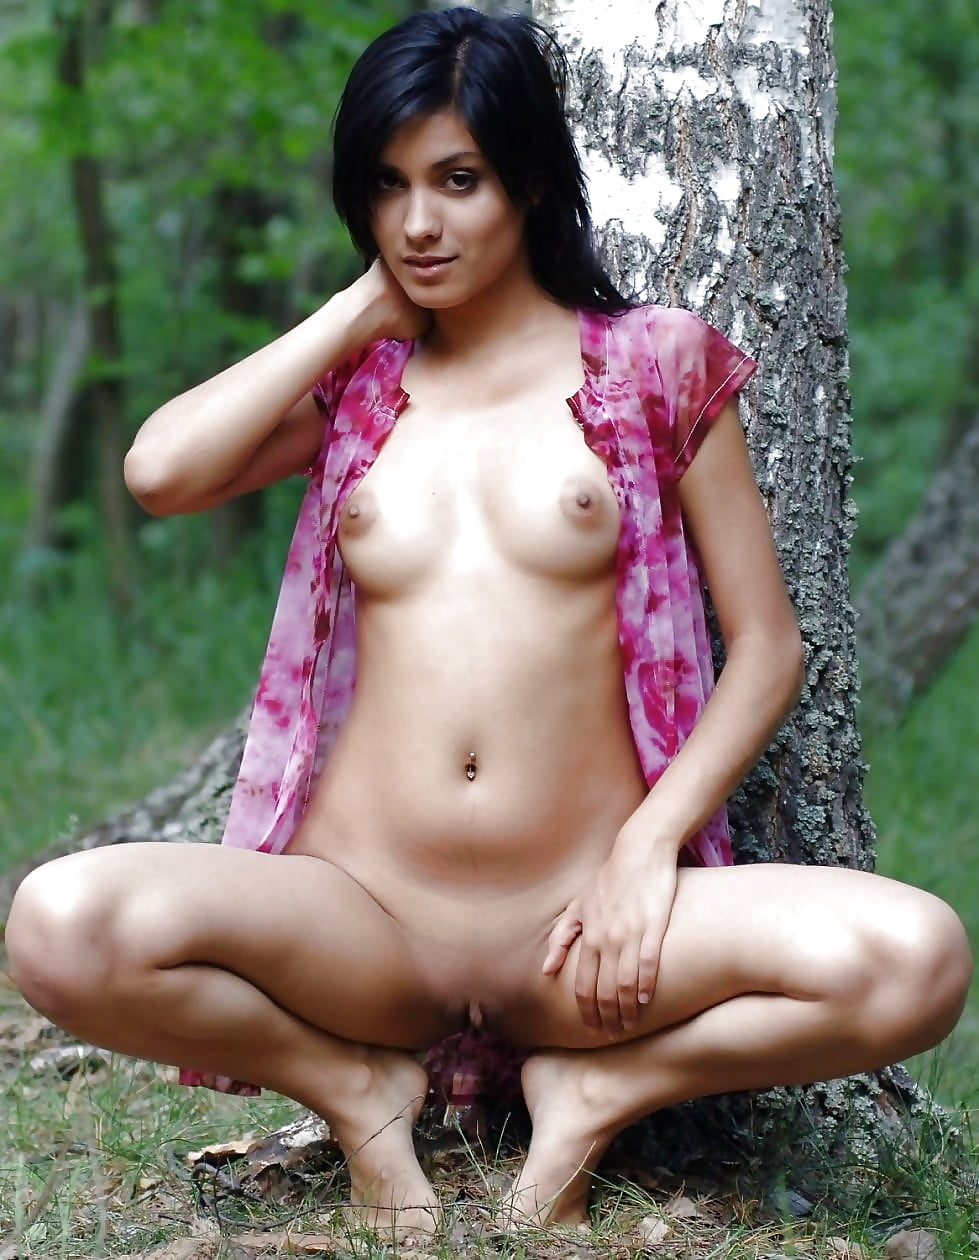 Nude girls perfect pakistani young